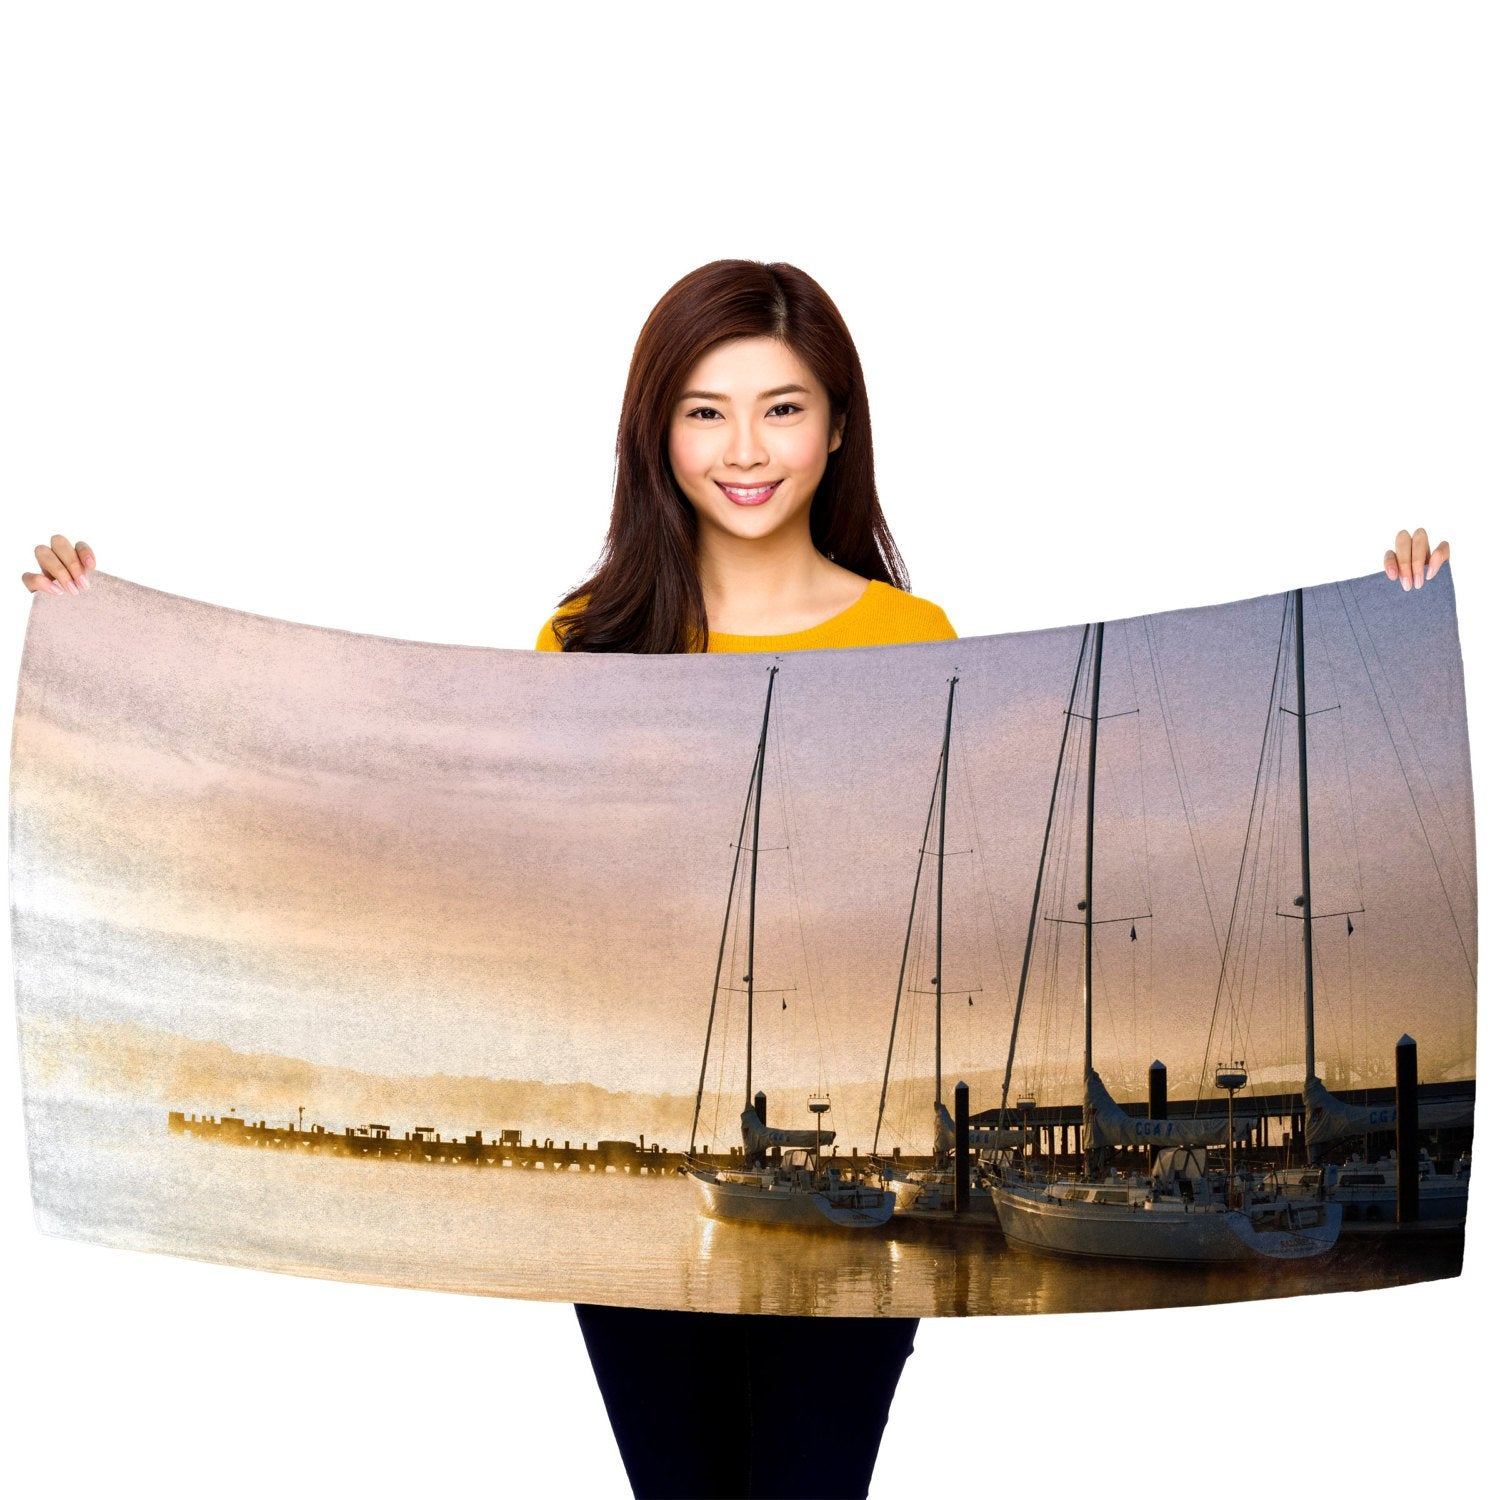 "Sailboats at Sunset - 30"" x 60"" Microfiber Beach Towel"